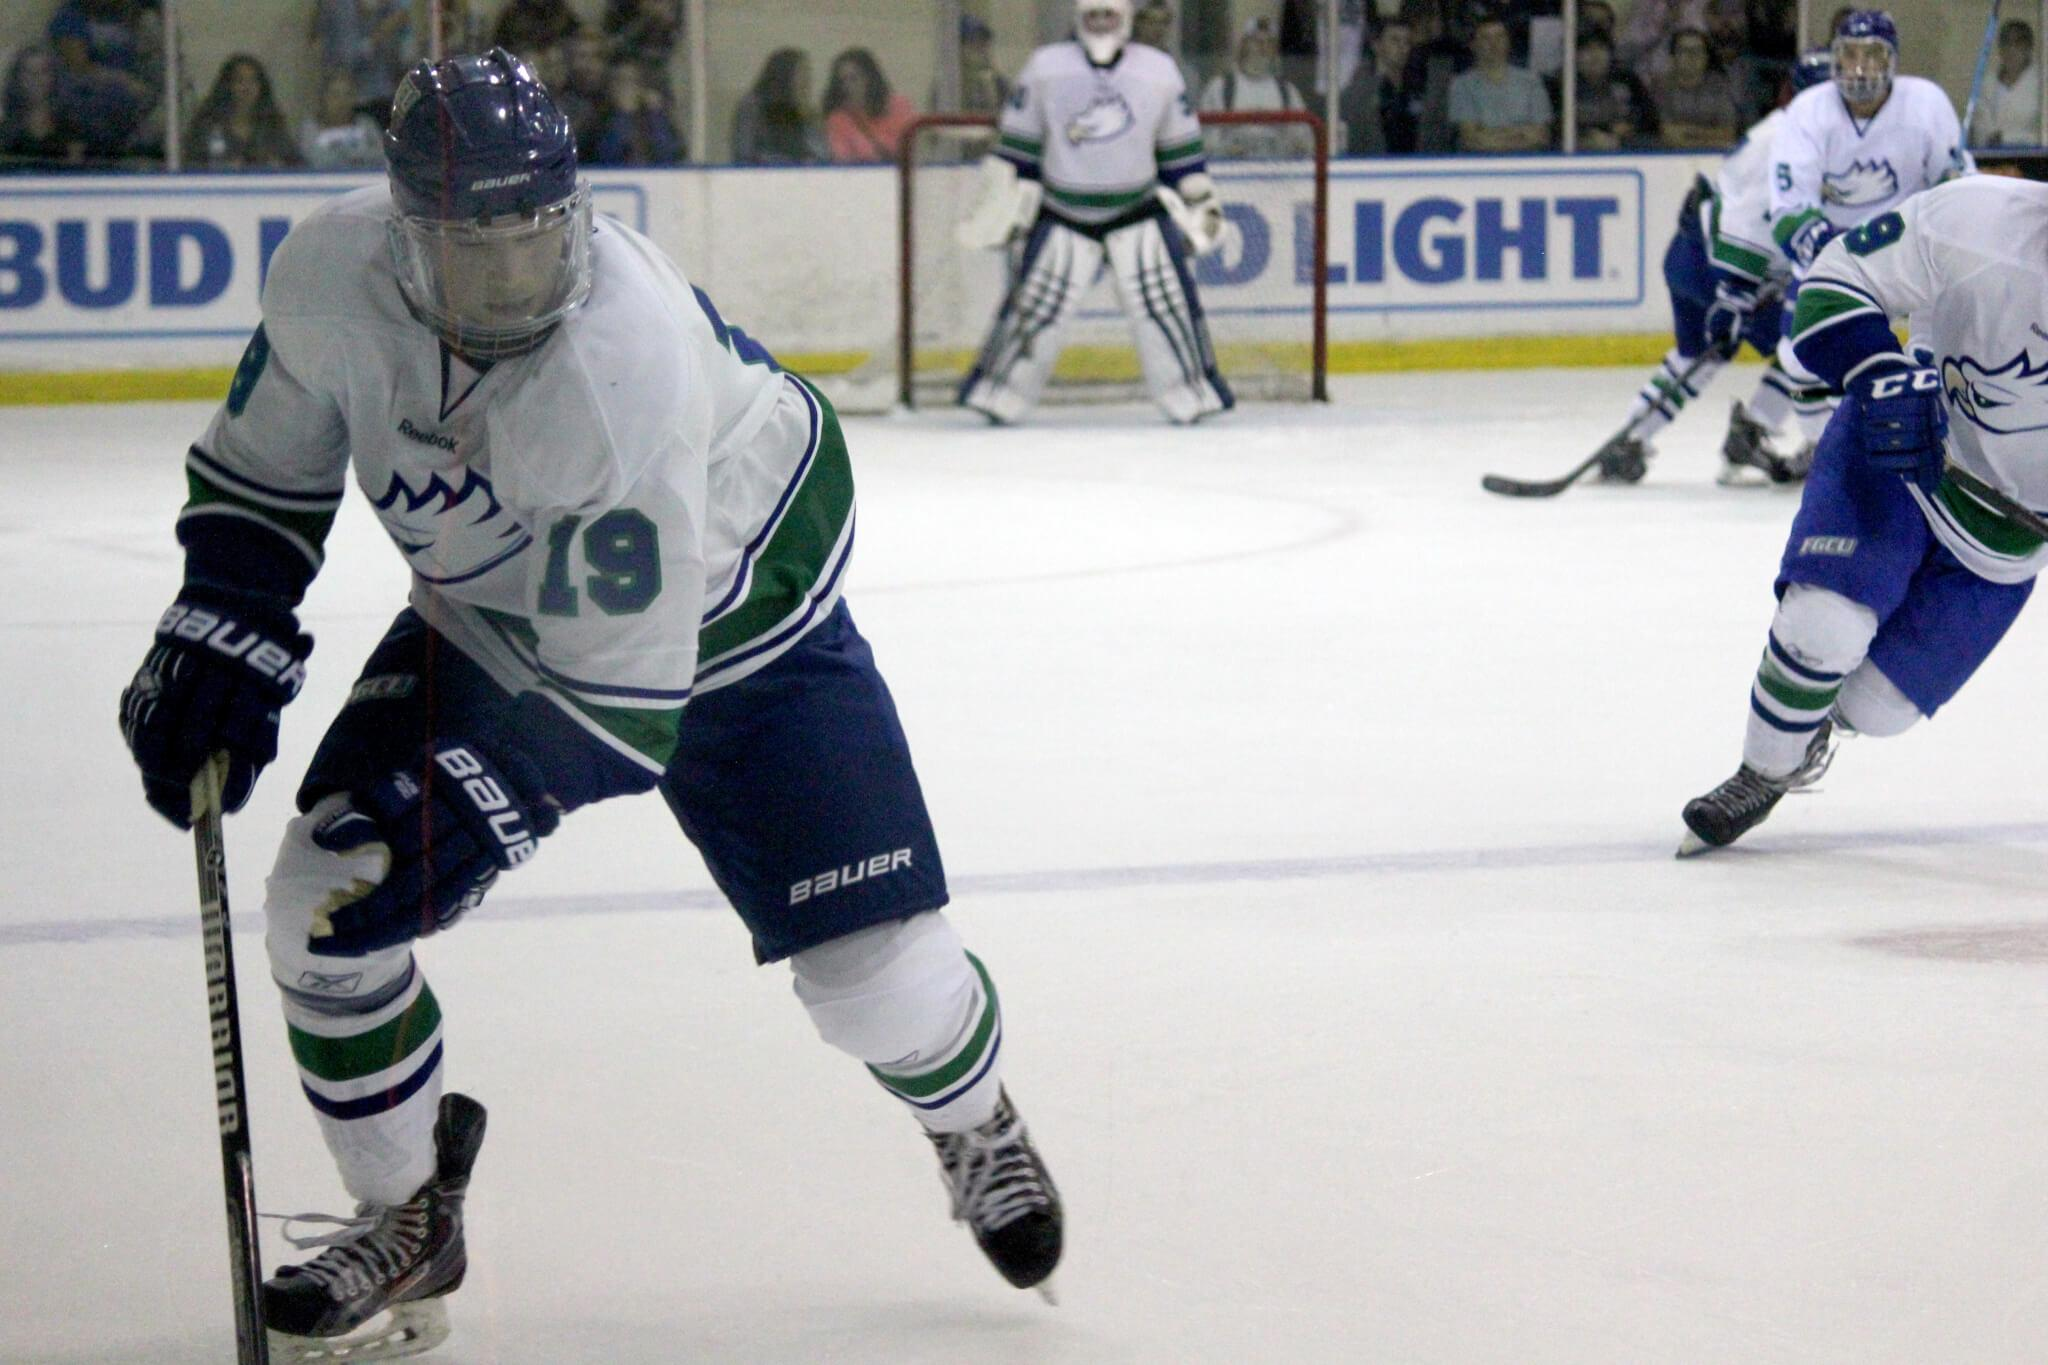 Eagles DII hockey unbeaten streak snapped during weekend road trip